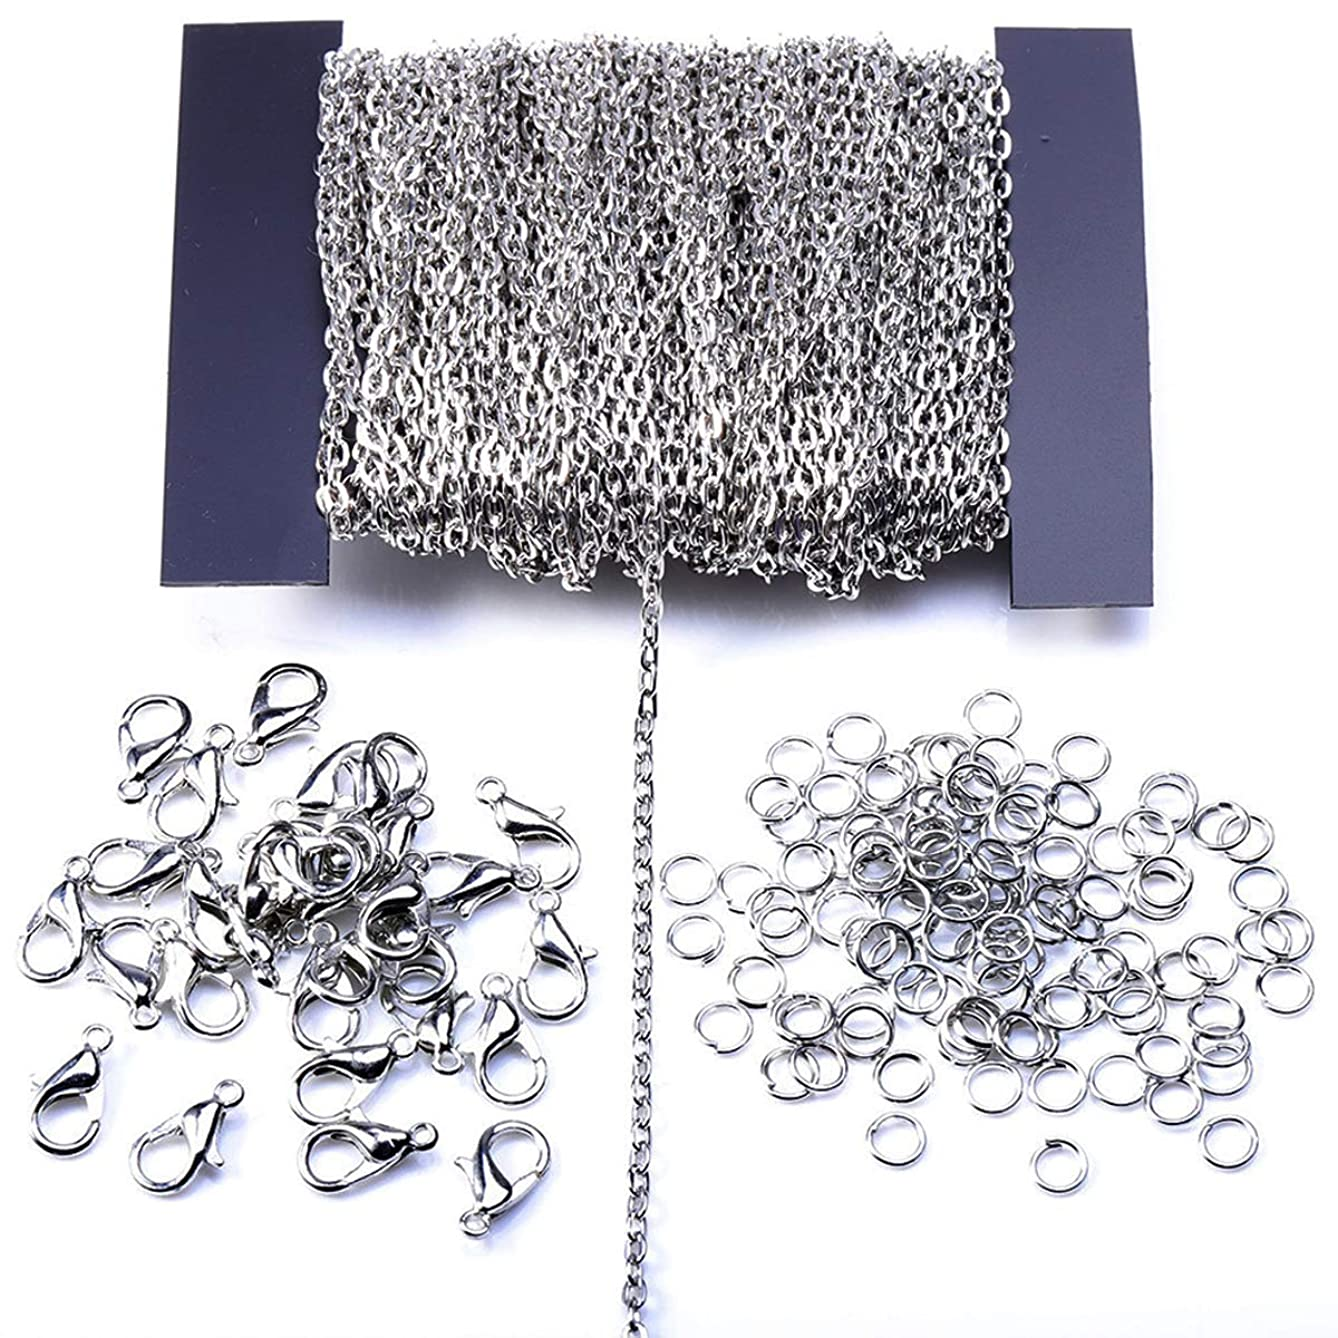 Ginooars 12m 39FT Cable Chain Link Jewelry Making Chains with 30pcs Lobster Clasps and 100pcs Jump Rings for Necklace Jewelry Pendant Accessories DIY Making 2x3mm